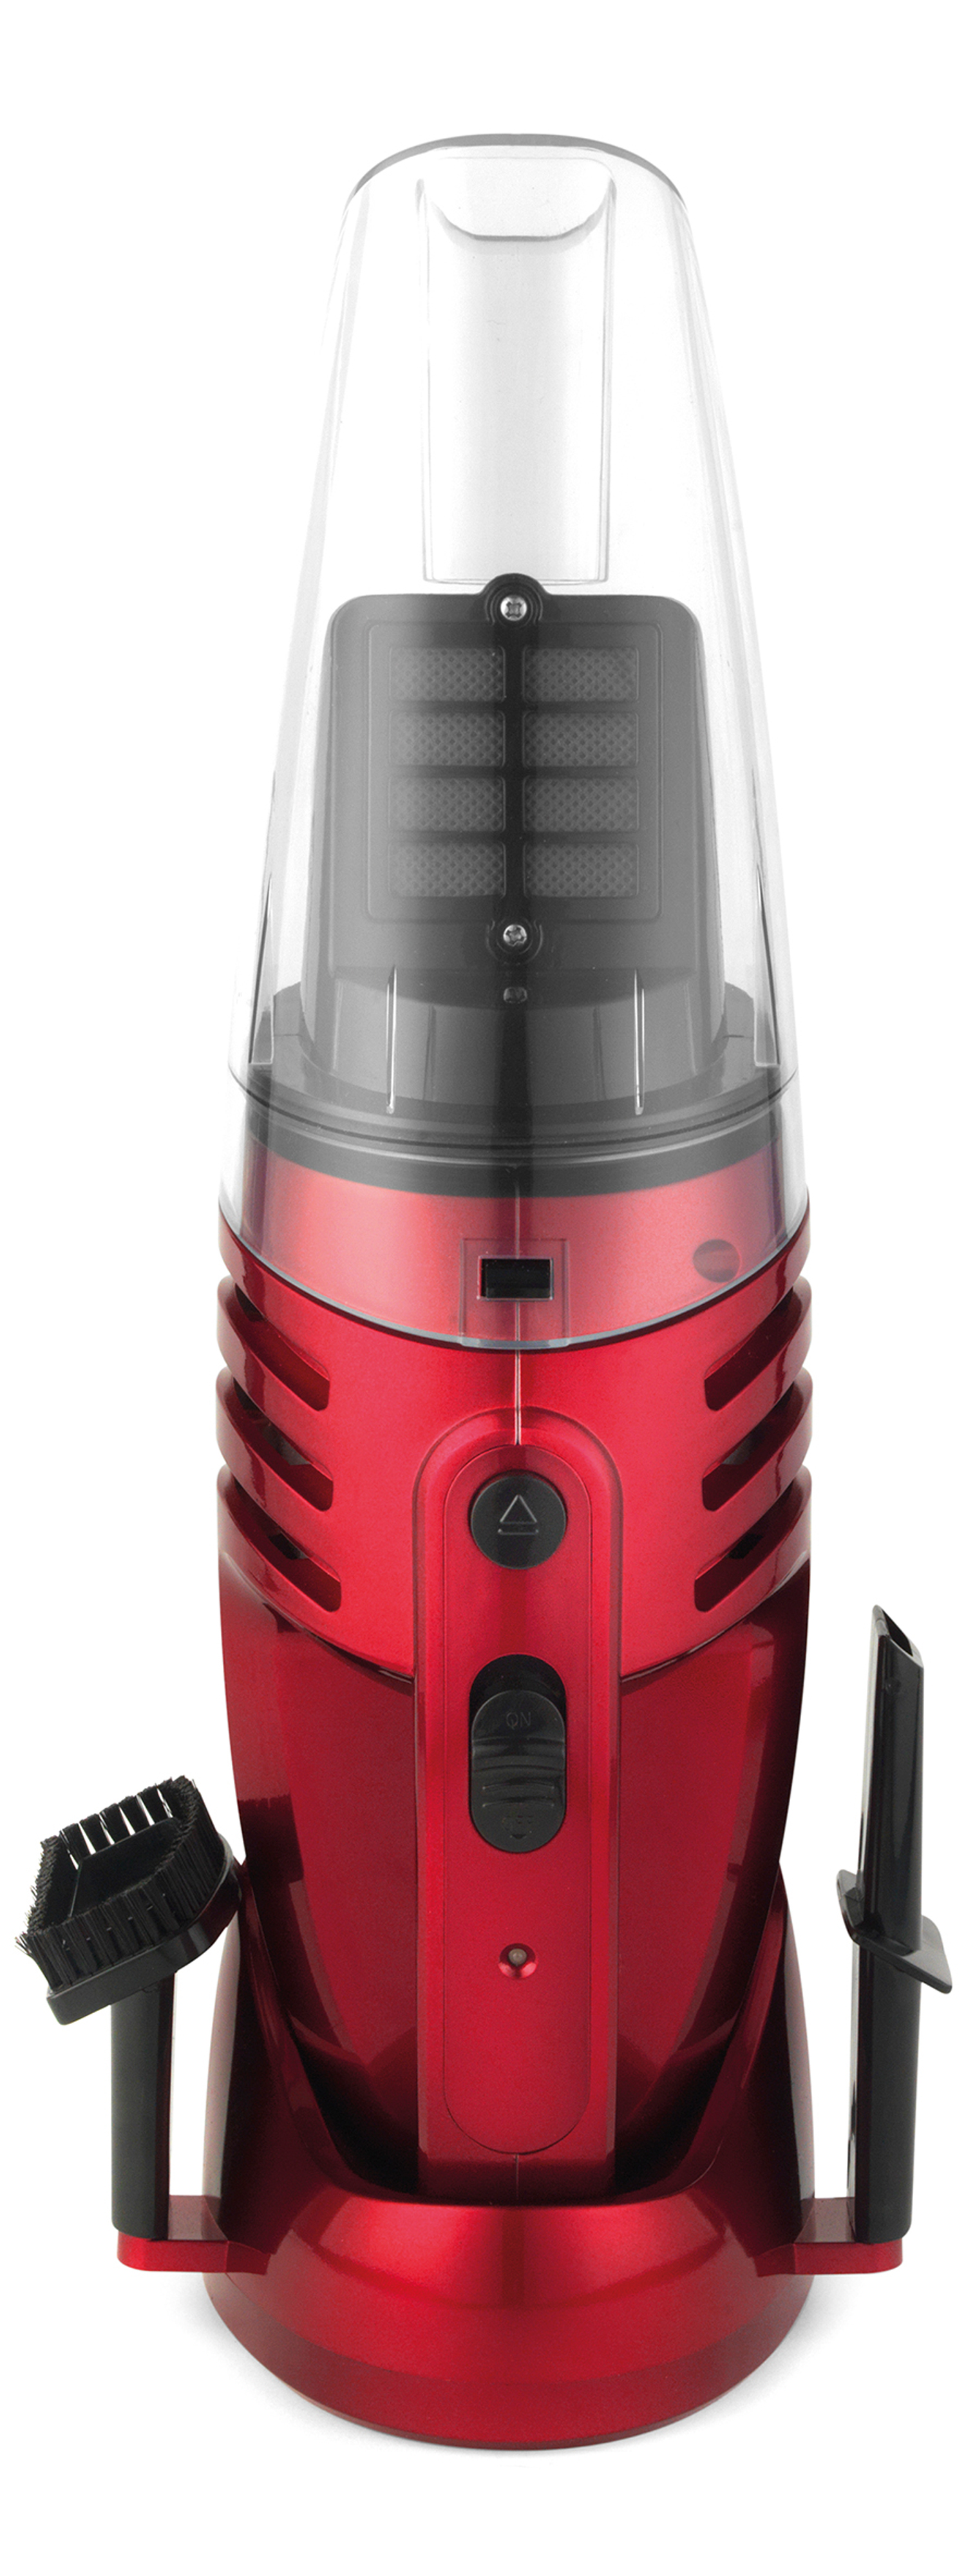 Beldray Cordless Wet And Dry Vac Beldray